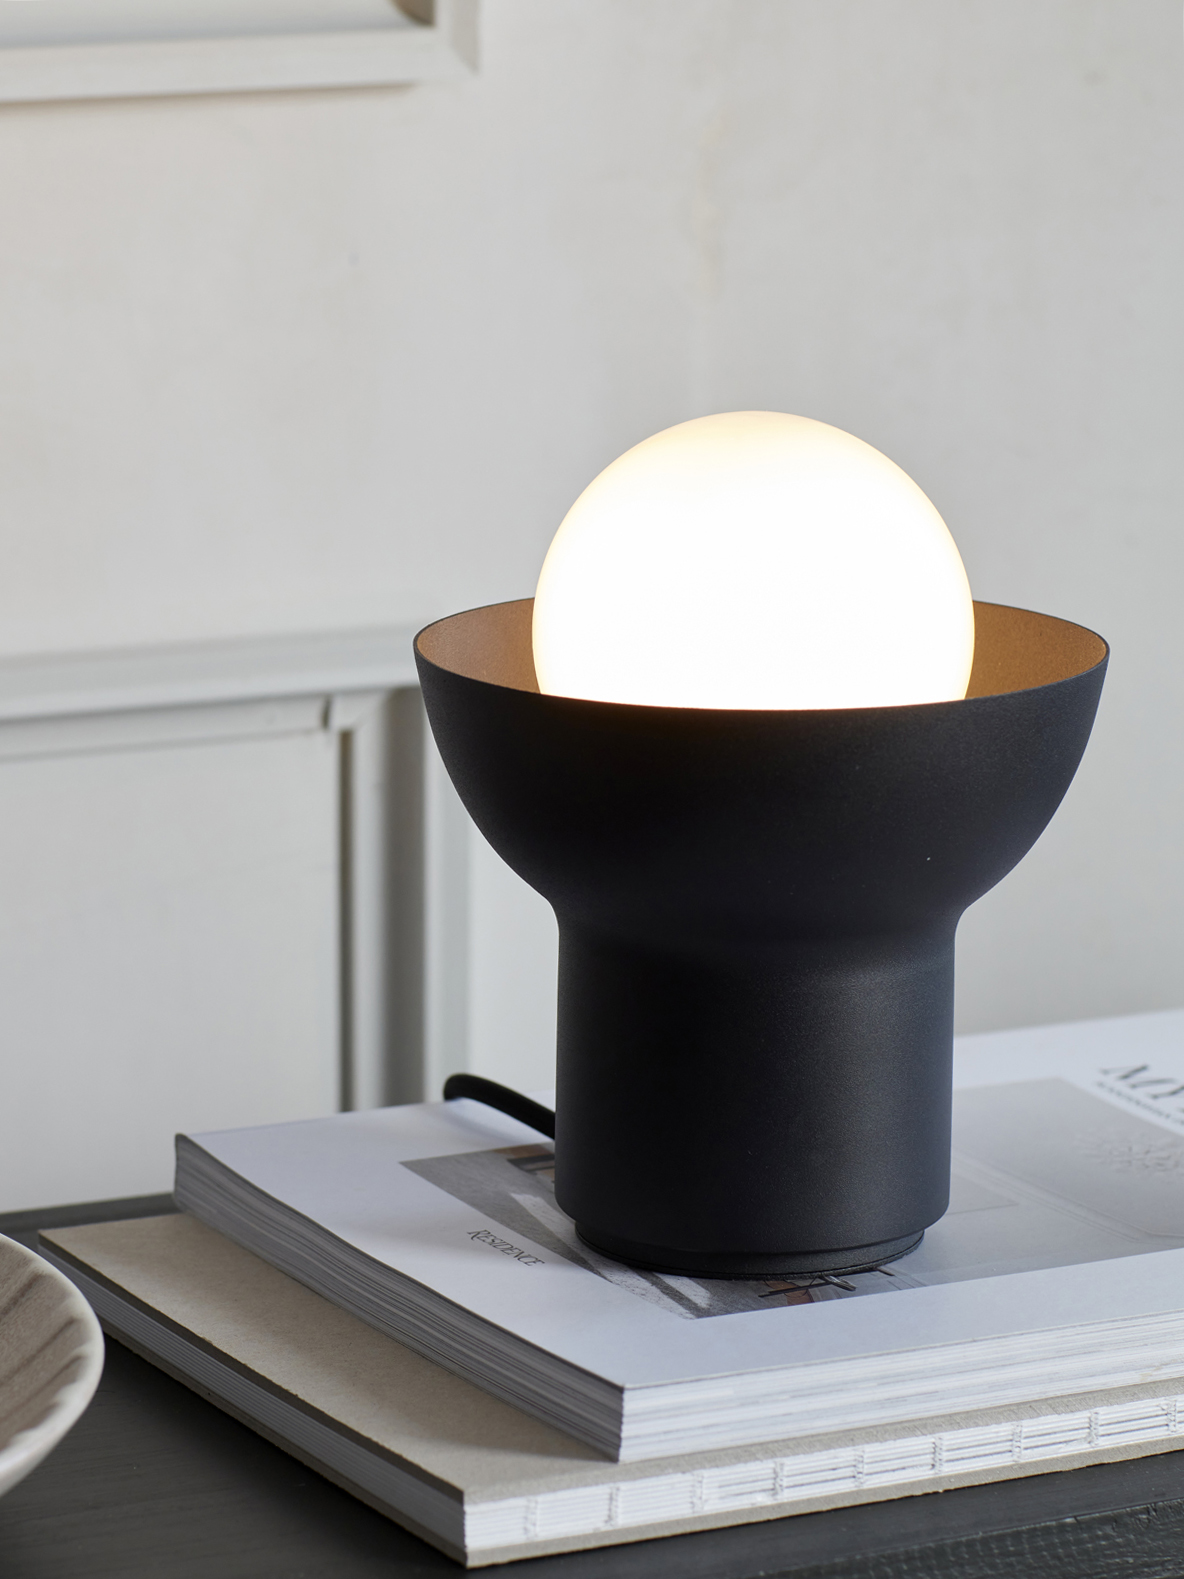 Black table lamp from Co Bankeryd designed by Odda